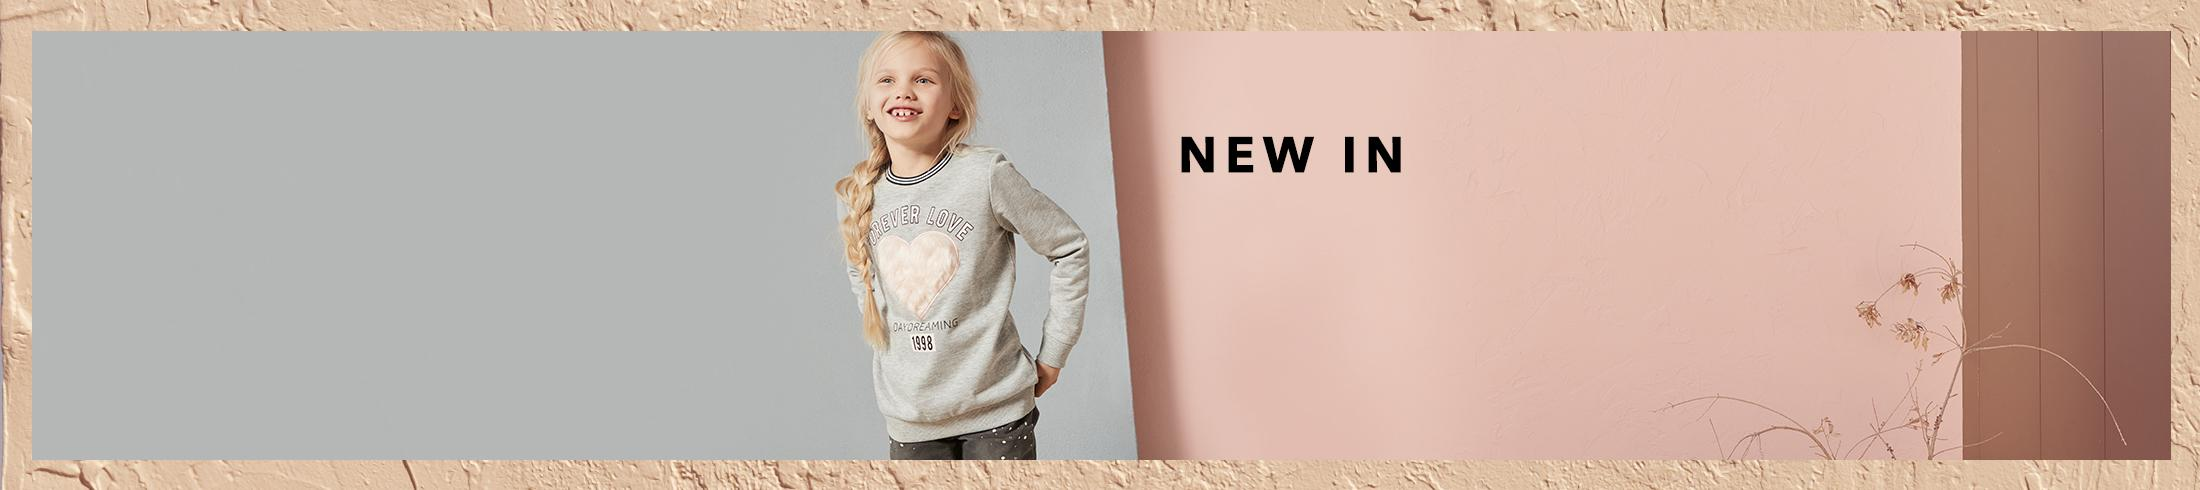 Kit them out with new girls' arrivals at George.com